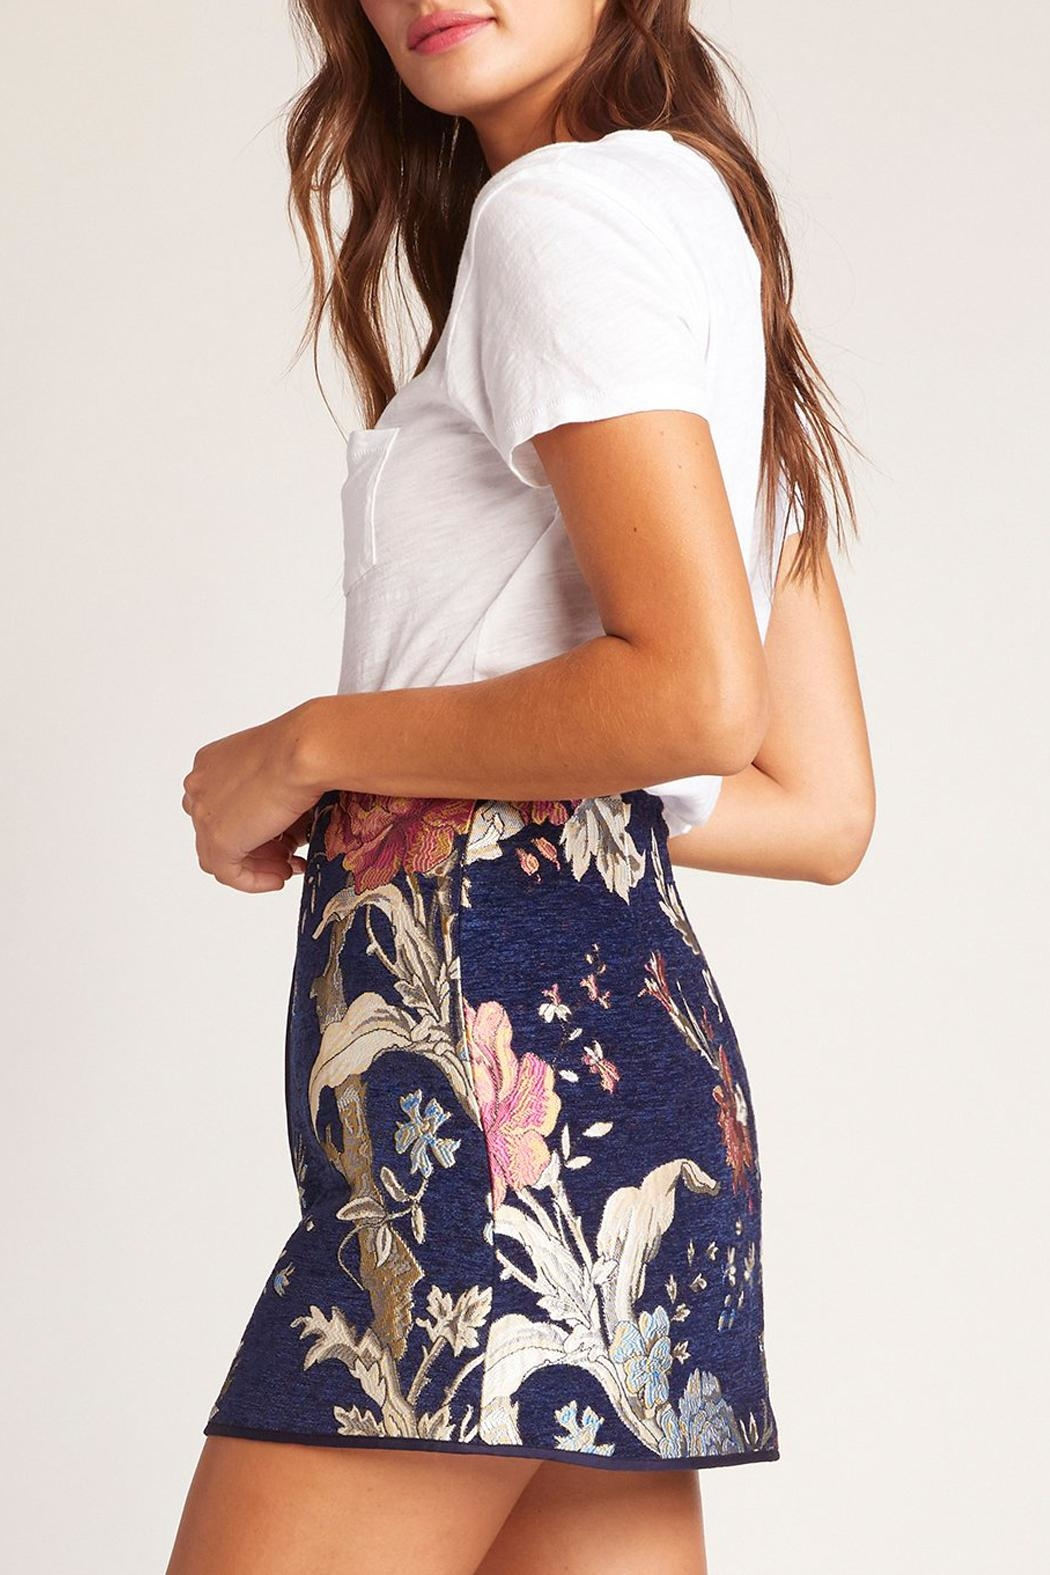 5c036fc0e402 Jack by BB Dakota Floral Brocade Skirt from New York by Luna ...